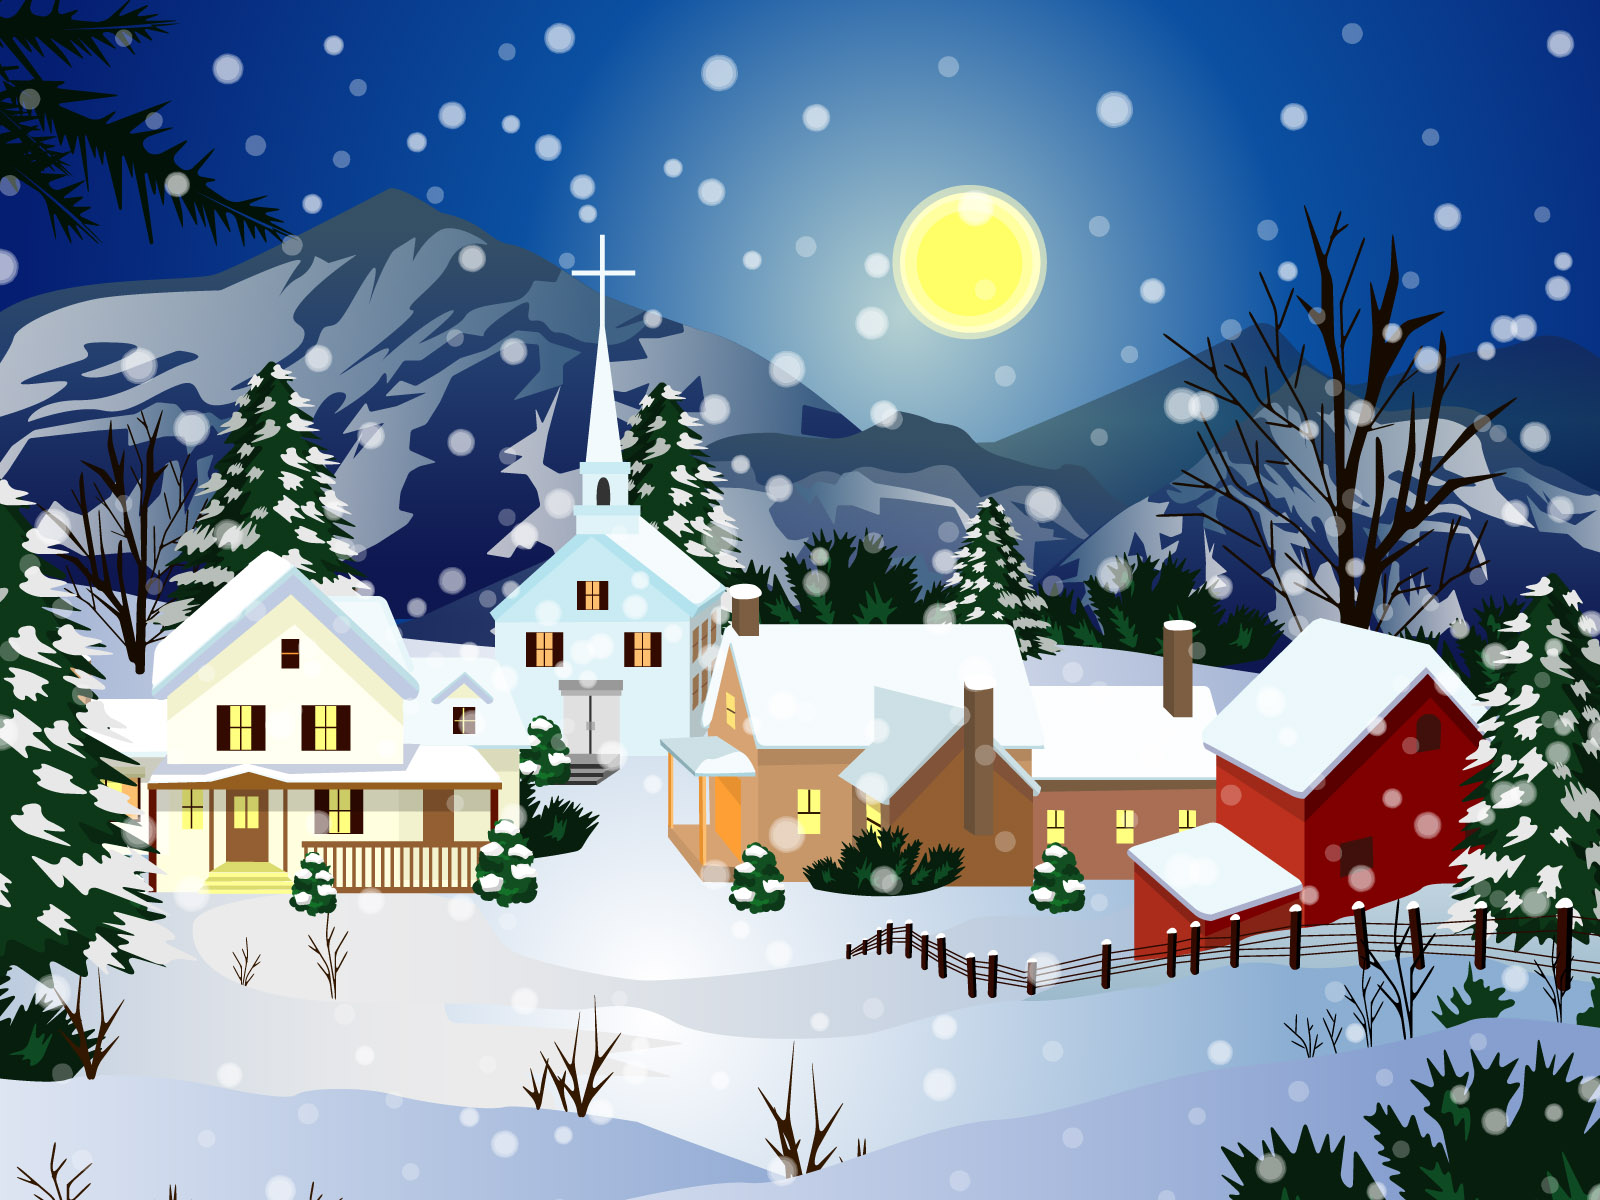 Christmas Village Winter wallpaper   ForWallpapercom 1600x1200